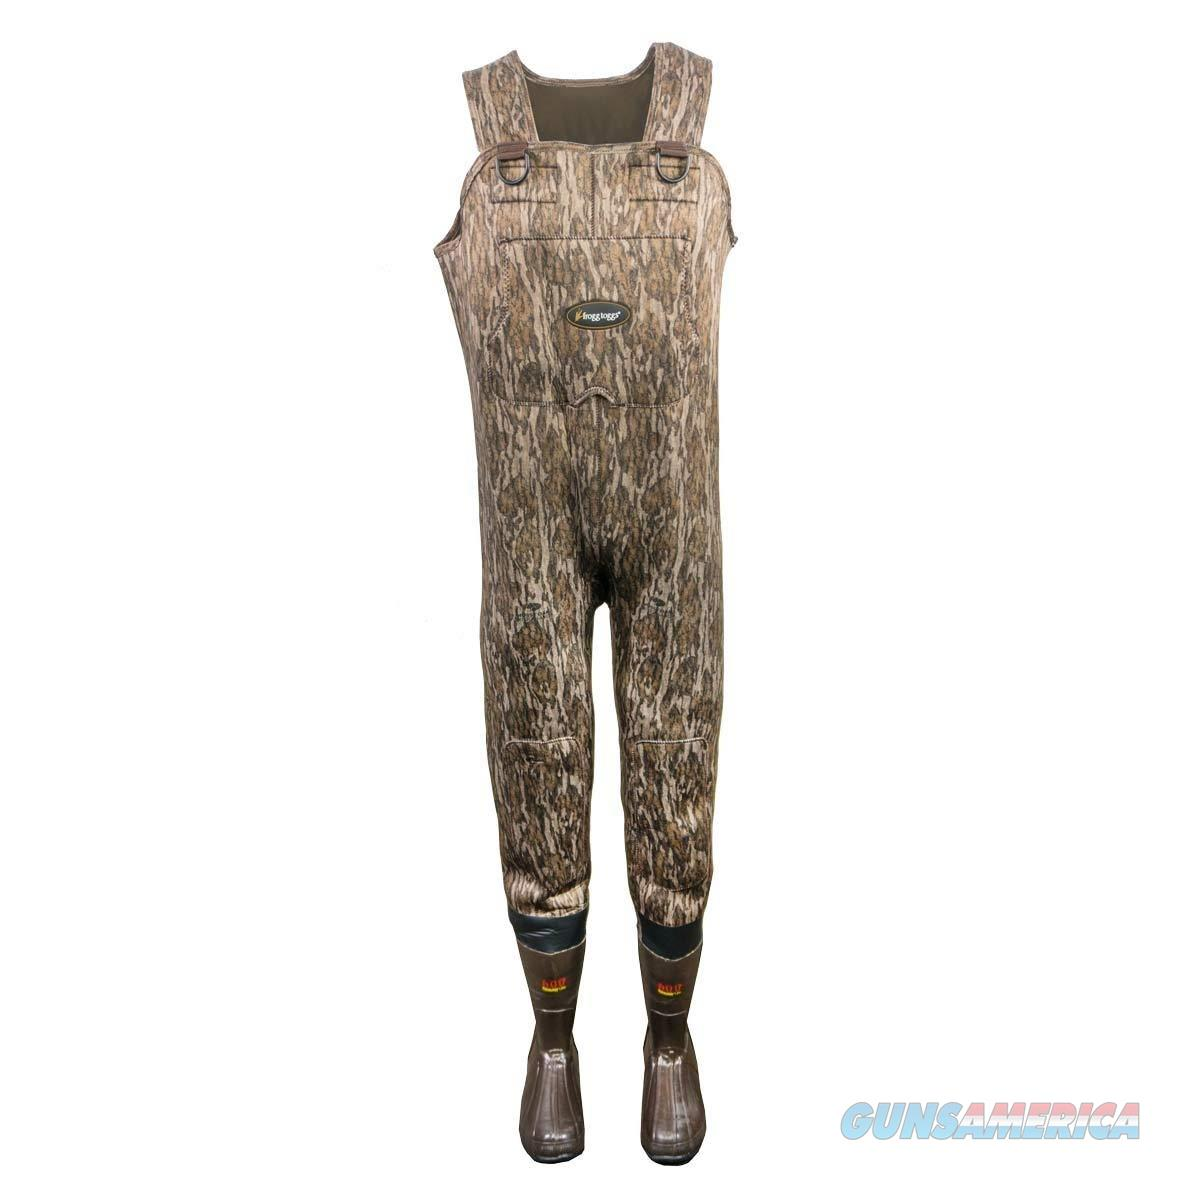 Frogg Toggs Chest Waders Bottomland Size 13  Non-Guns > Hunting Clothing and Equipment > Clothing > Camo Outerwear